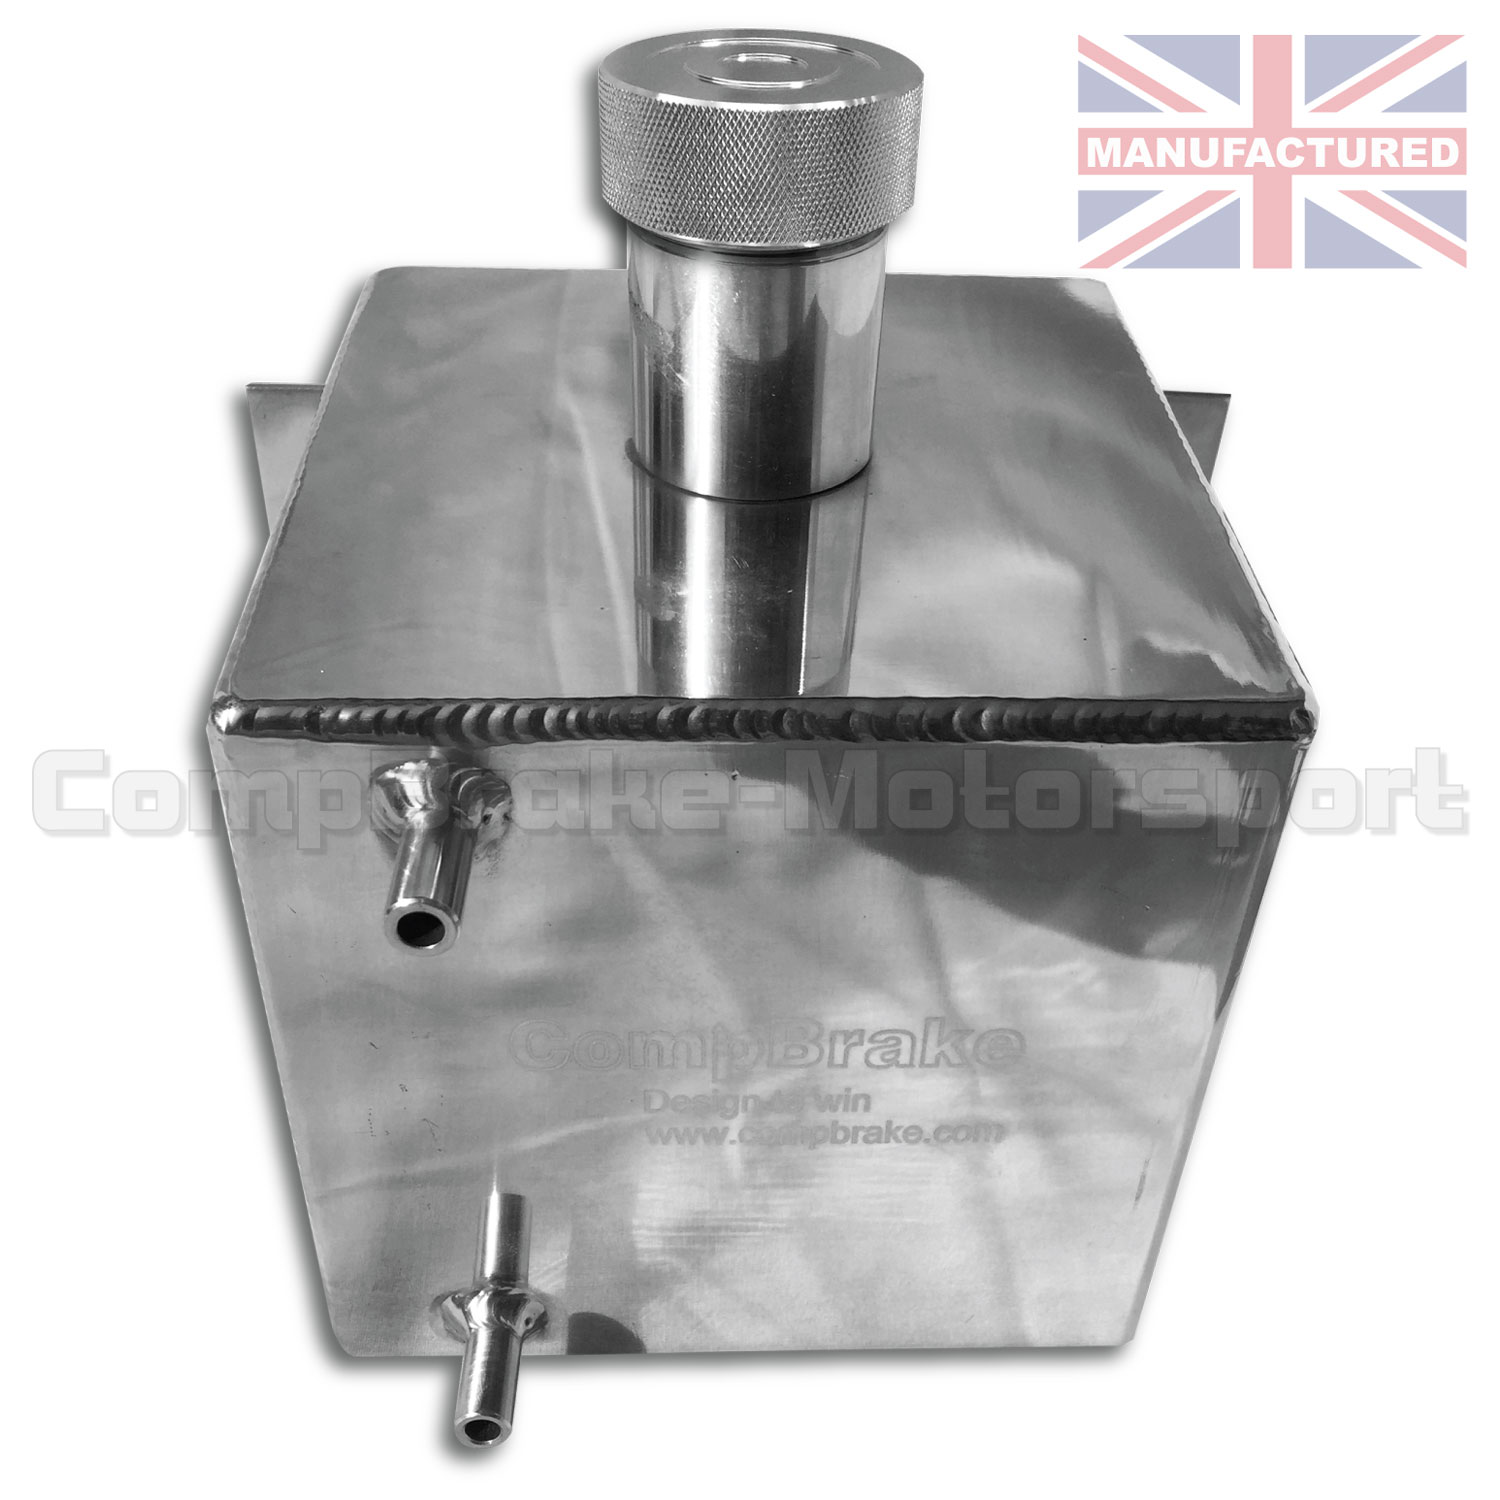 Diesel Exhaust Fluid >> Water Header Tank 4 LTR - Vertical Square Alloy 250mm X 150mm X 150mm With Cap - Fuel System ...